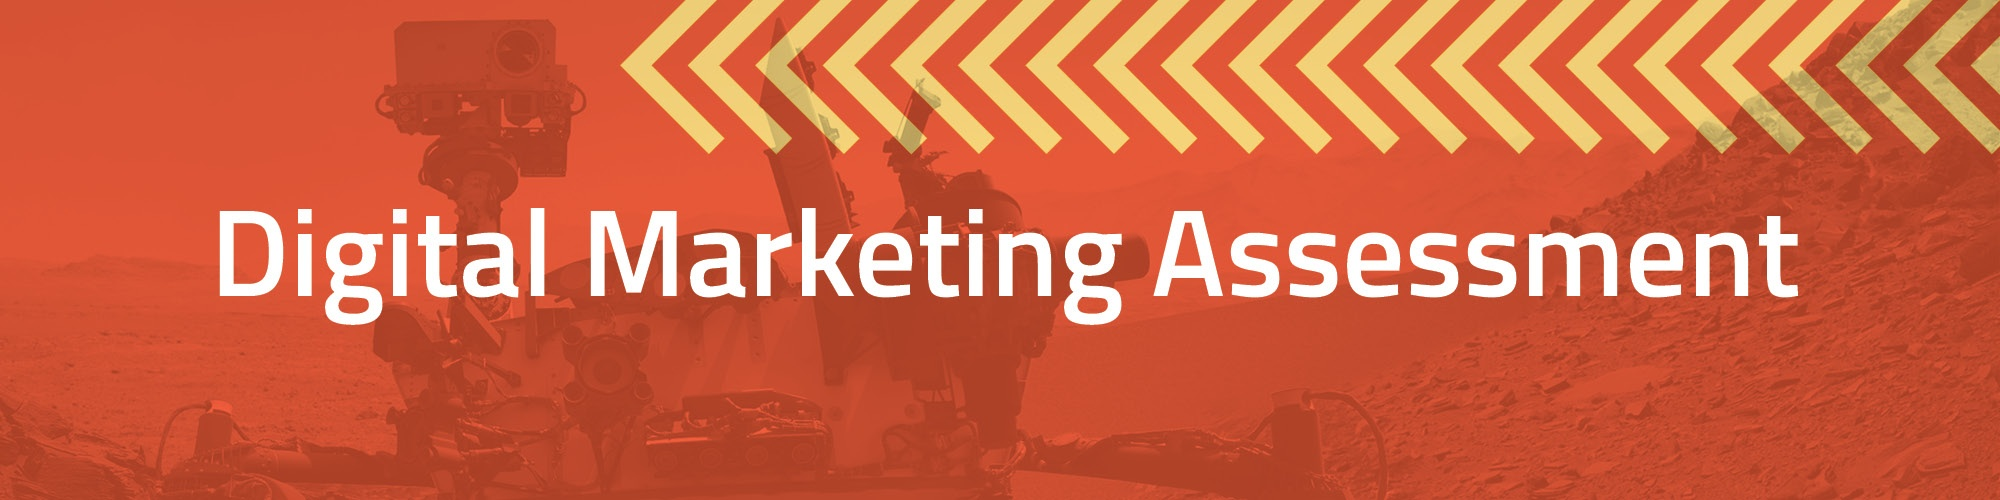 Imagewerks Marketing Digital Marketing Assessment